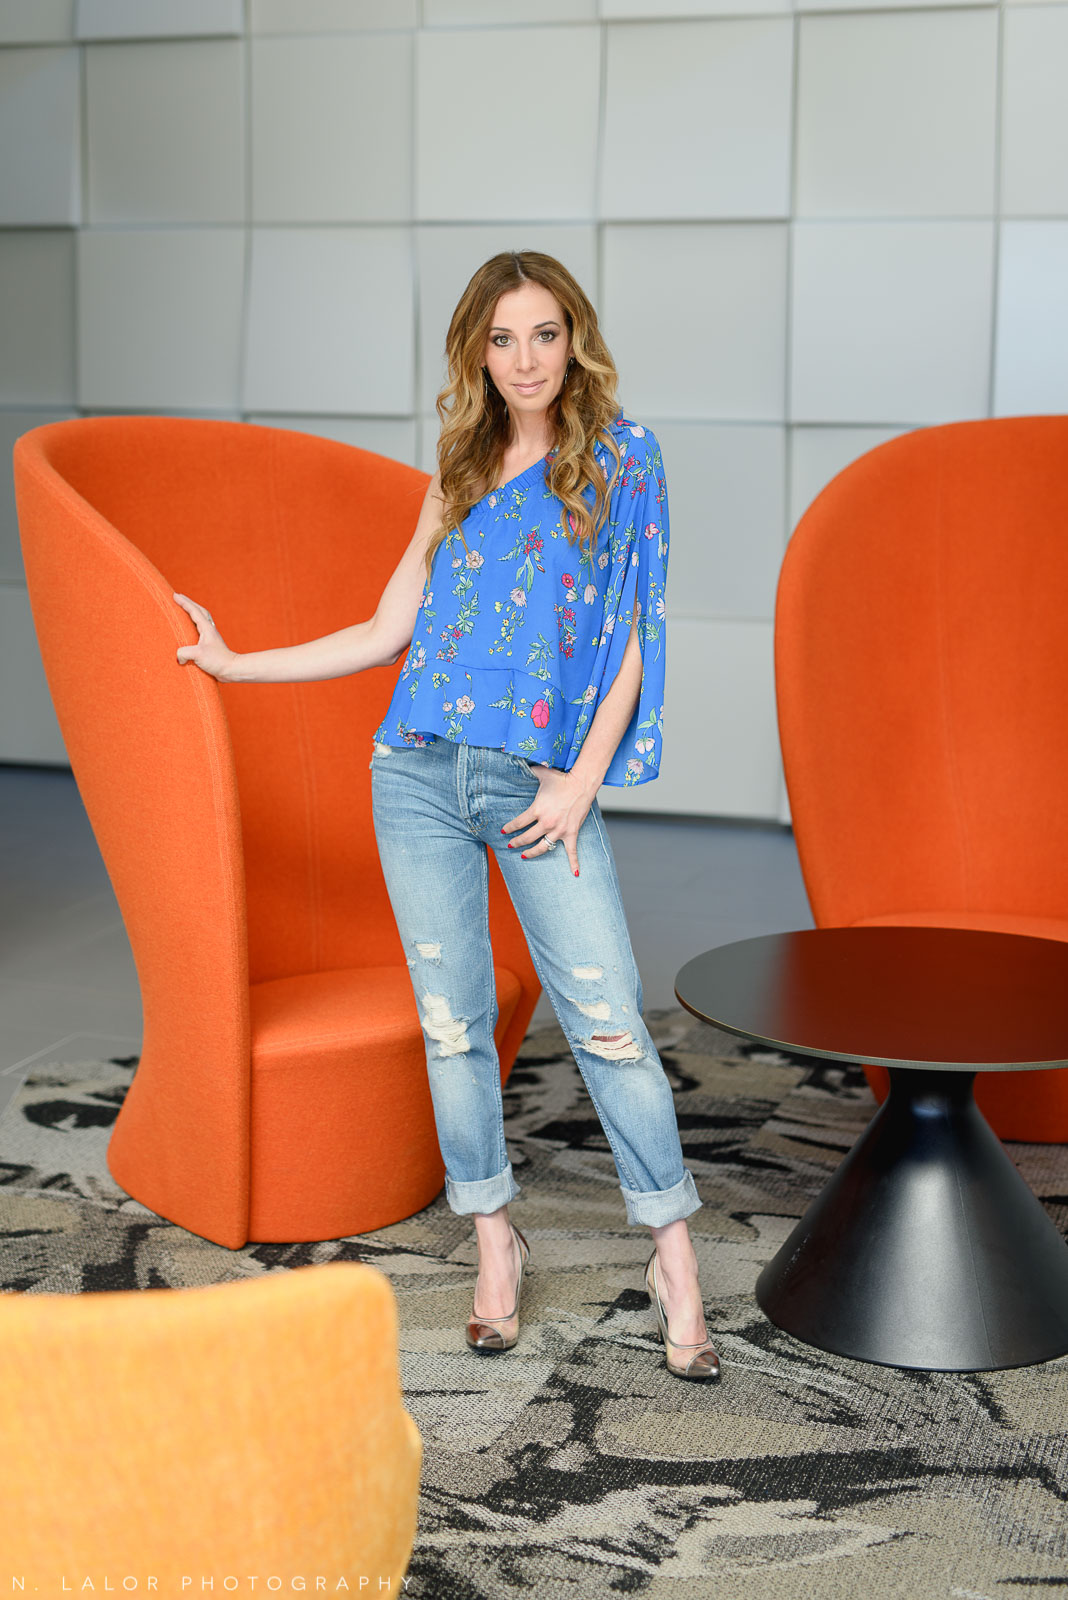 Look #1 - Blue floral shirt and jeans. Those windows behind me provided gorgeous light!